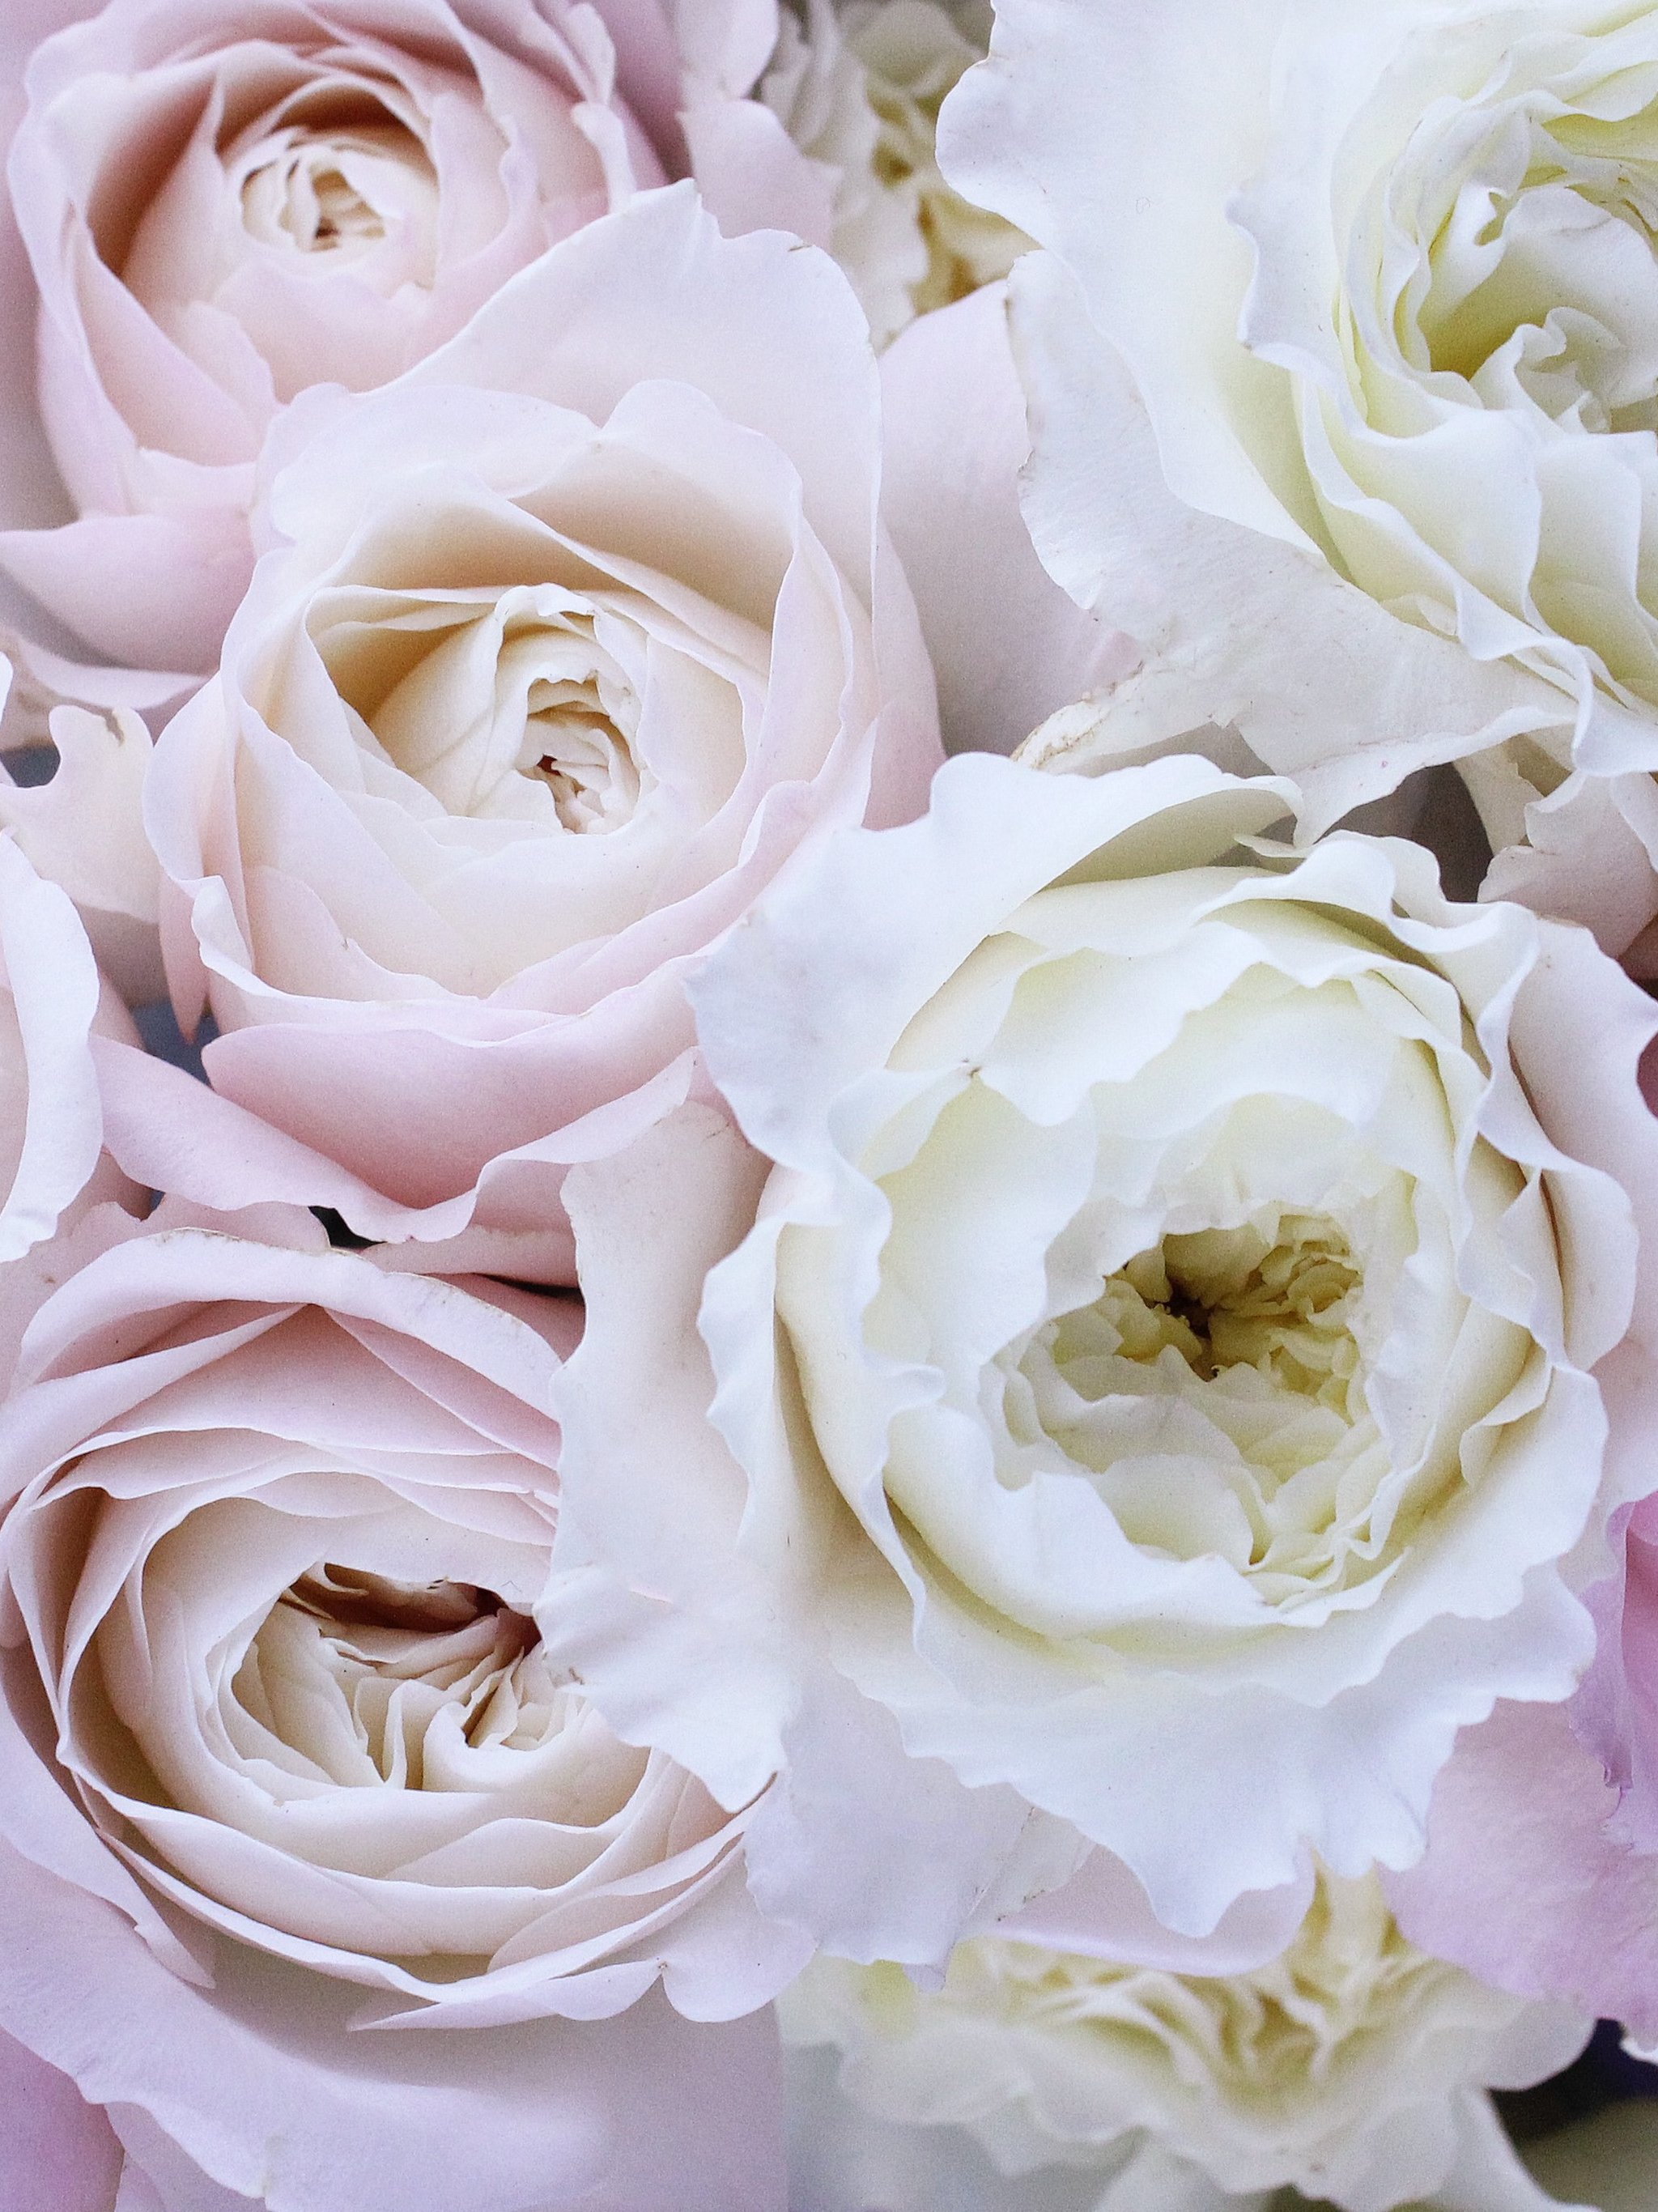 pale pink and white roses wallpaper - mobile & desktop background